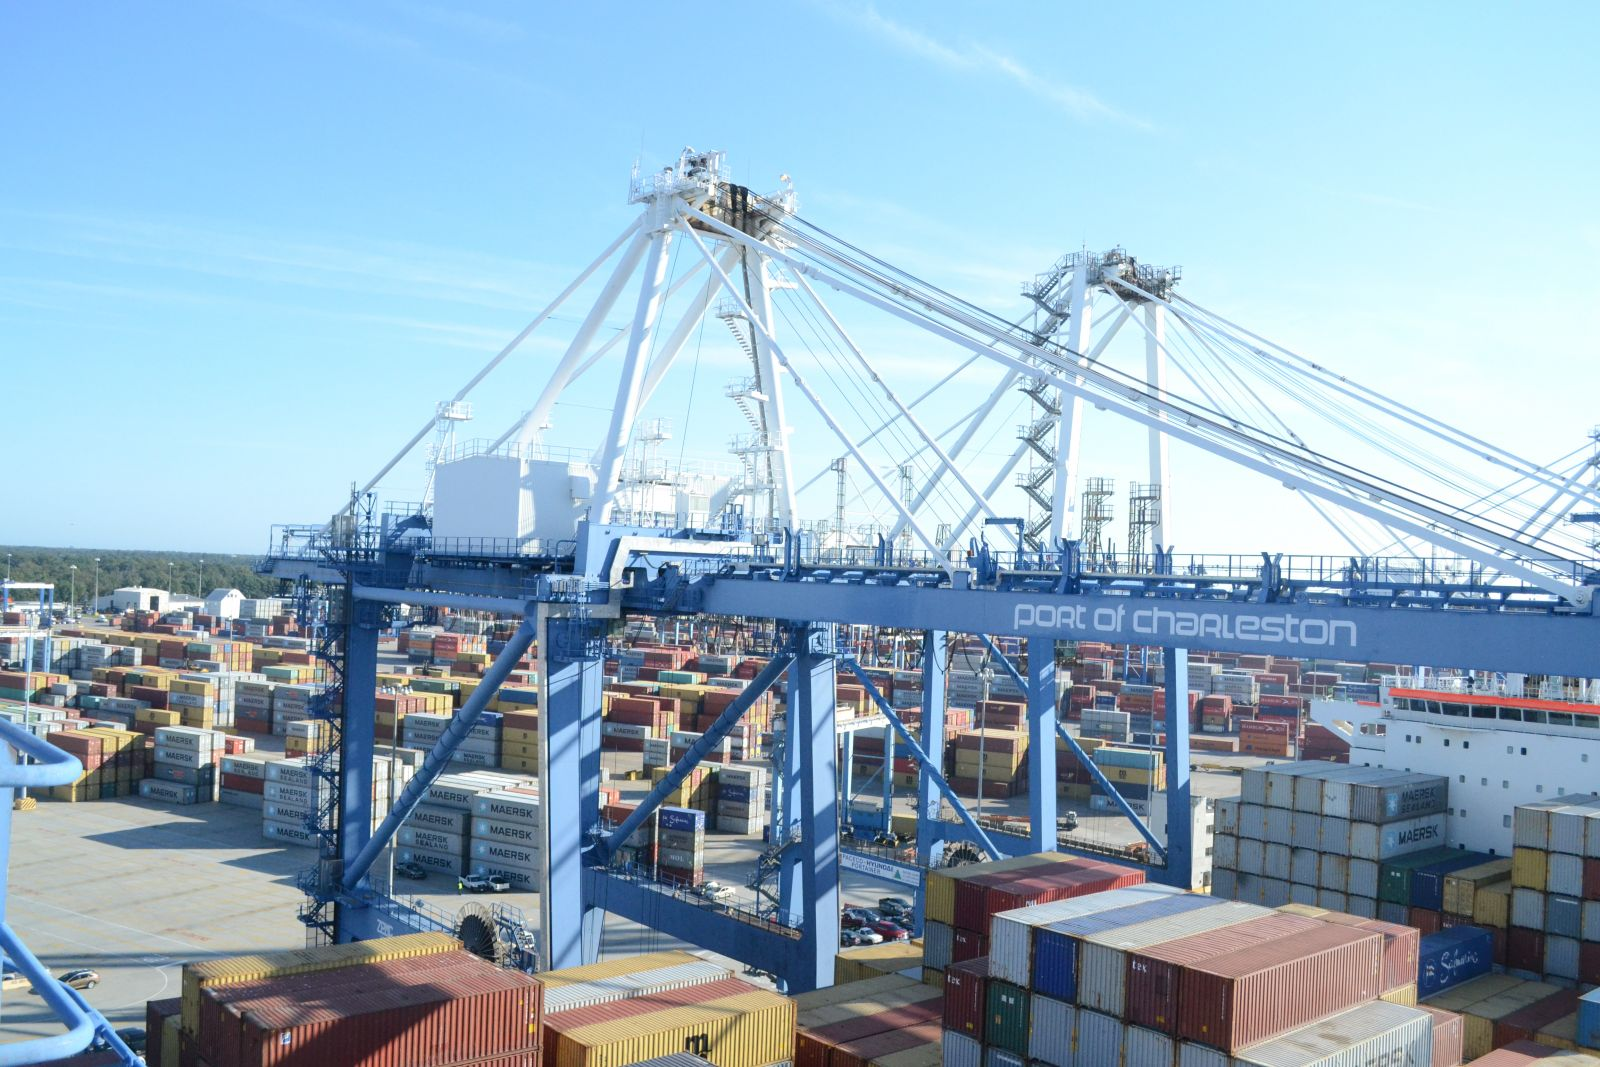 The port reported a significant decline in empty, imported containers coming through in fiscal year 2016. (Photo/Liz Segrist)